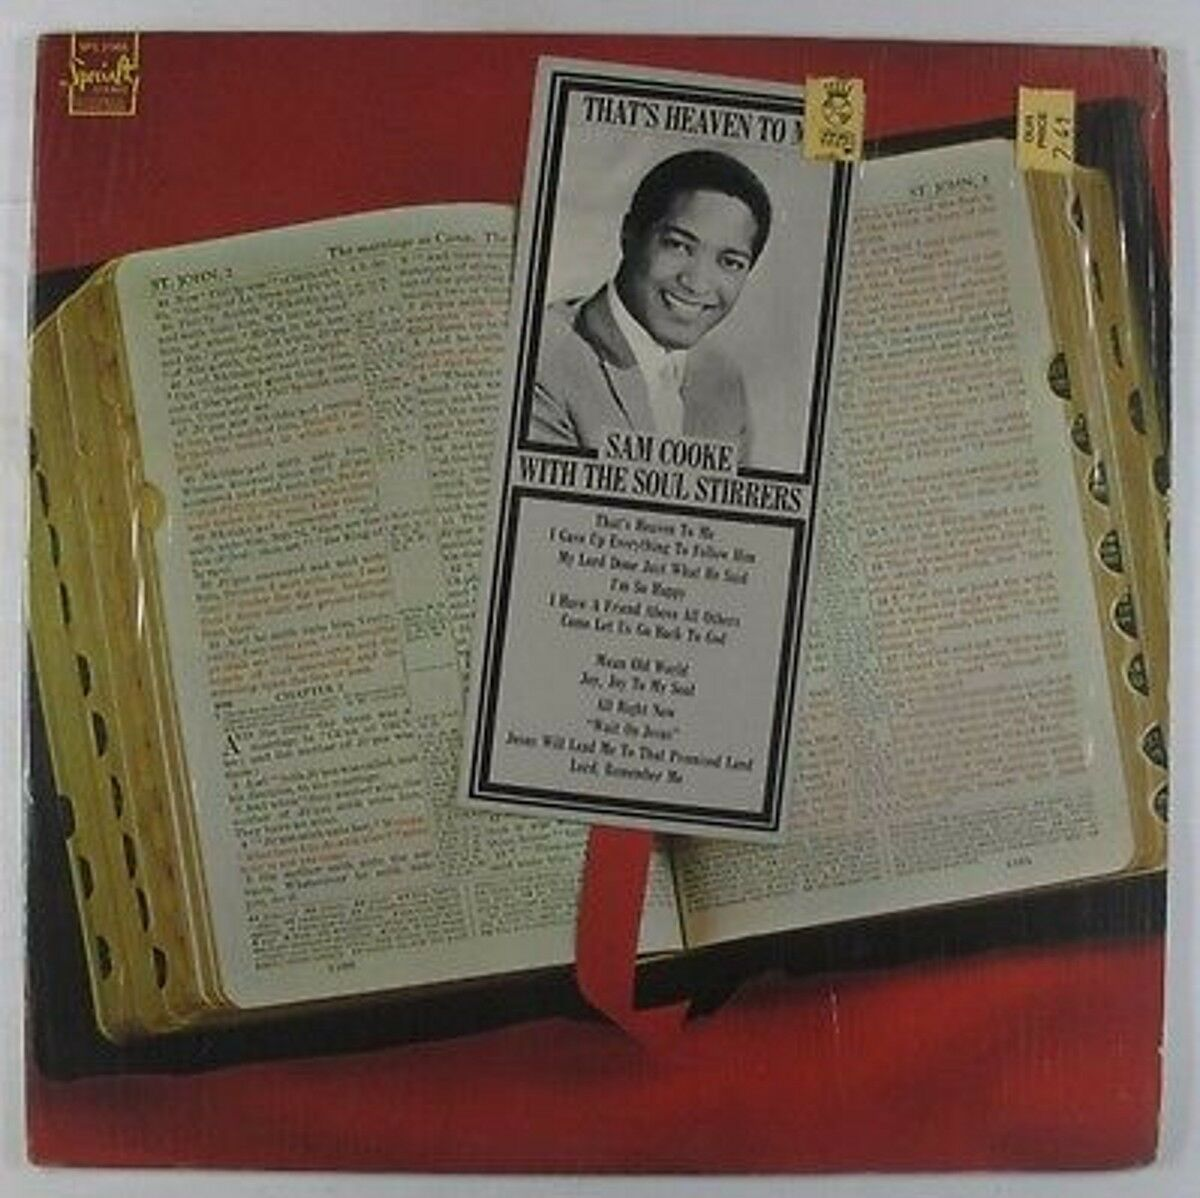 That's Heaven To ME (Specialty) - Soul Stirrers featuring Sam Cooke